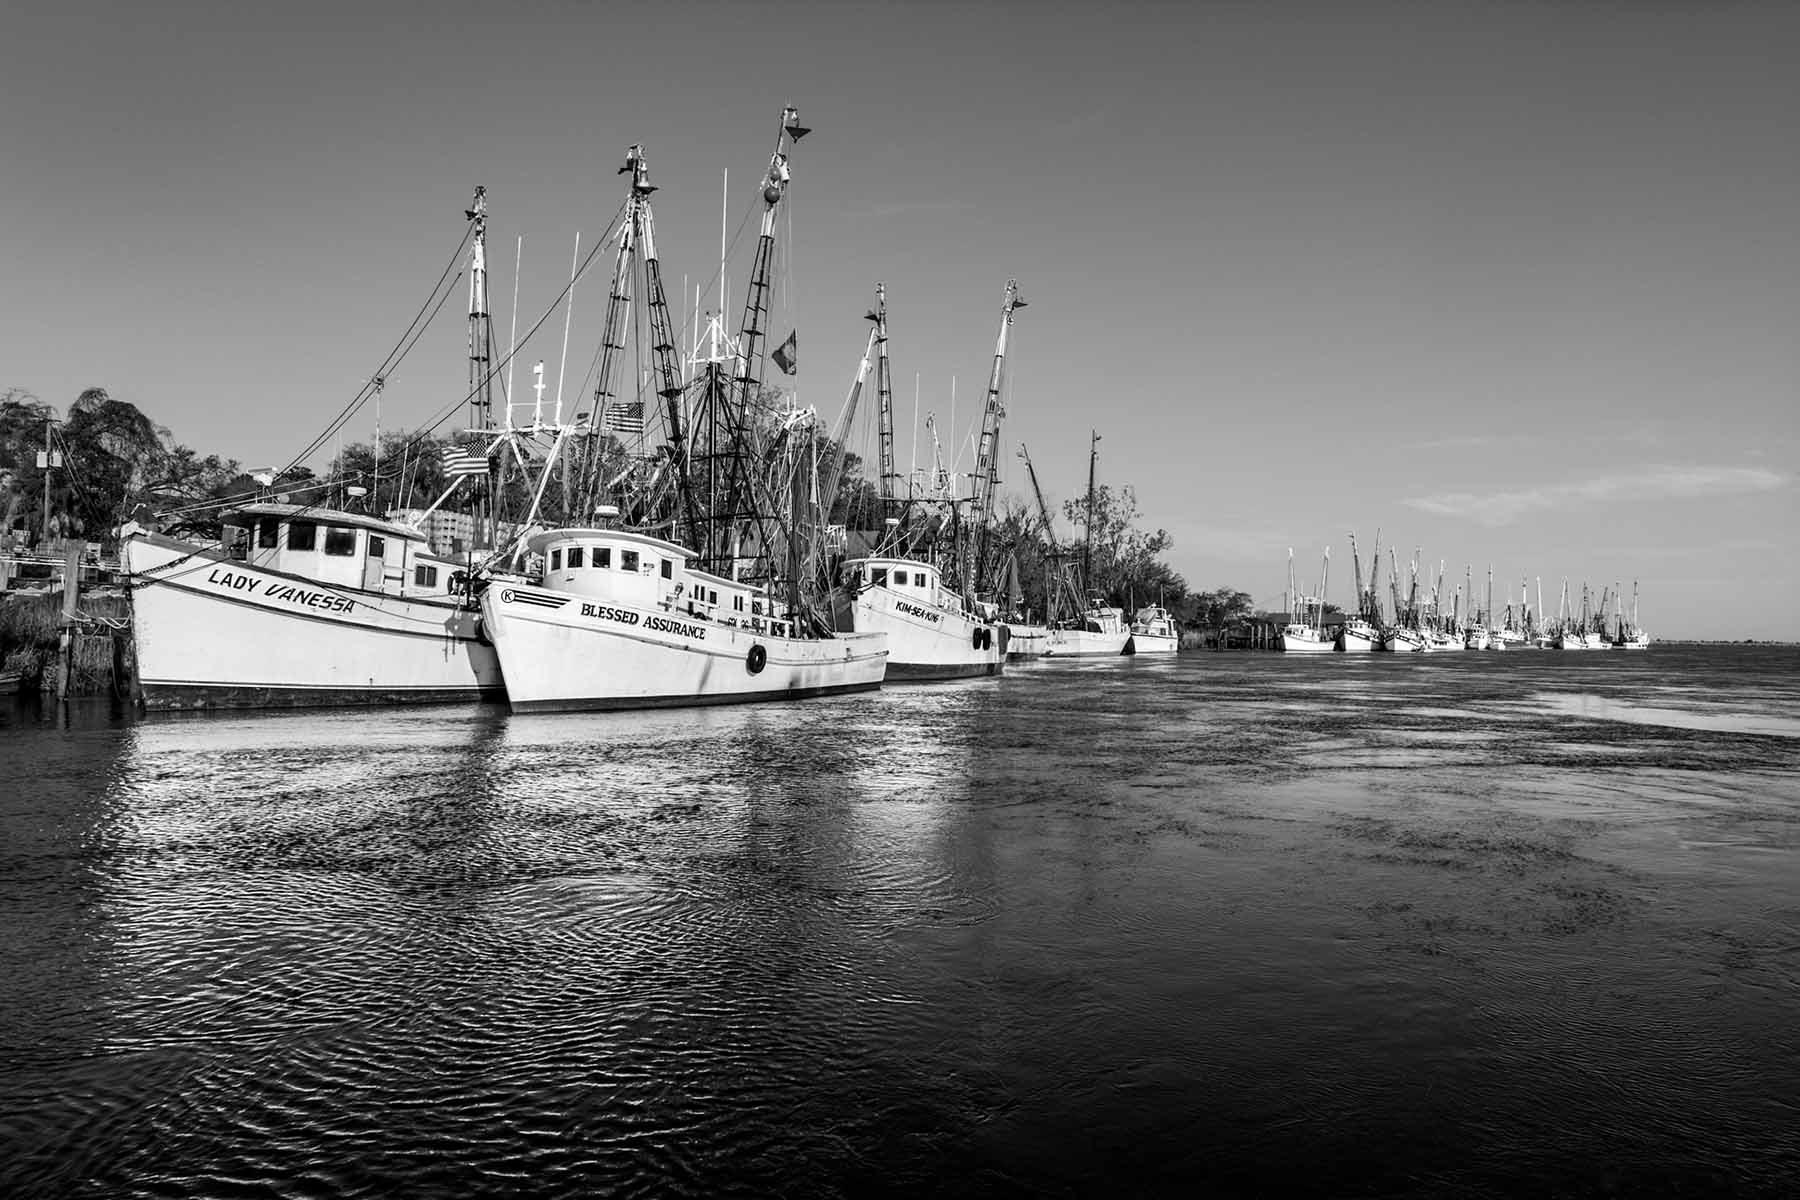 Shrimp boats Darien Georgia Tim Barnwell photography